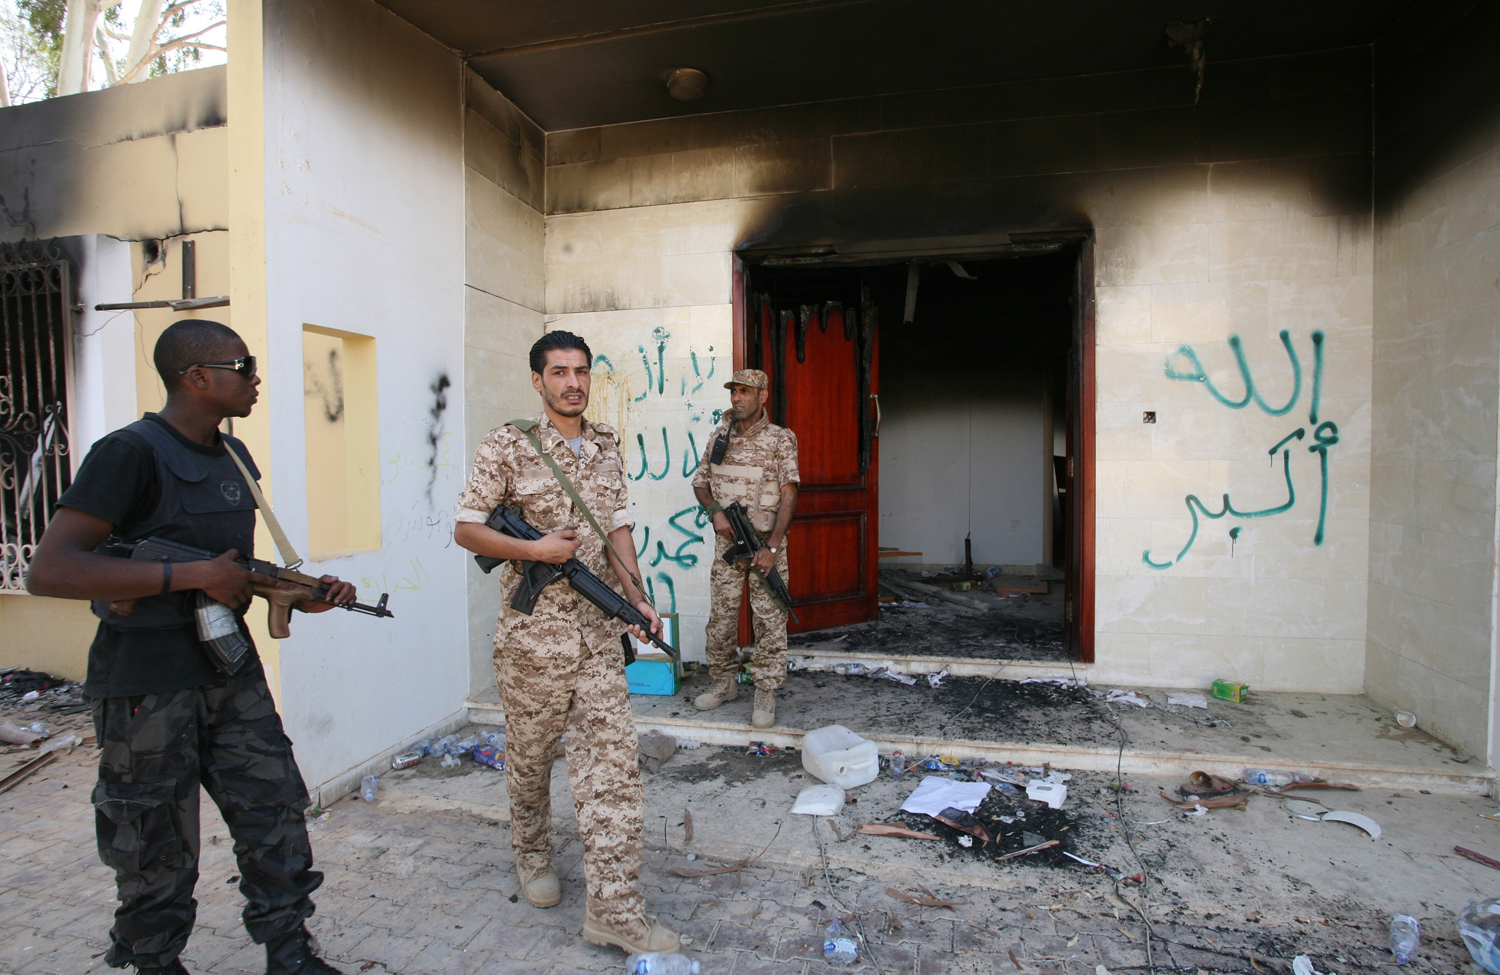 Libyan-military-guards-check-one-of-the-U.S.-Consulates-burnt-out-buildings-during-a-visit-by-Libyan-President-Mohammed-el-Megarif.-AP-Photo